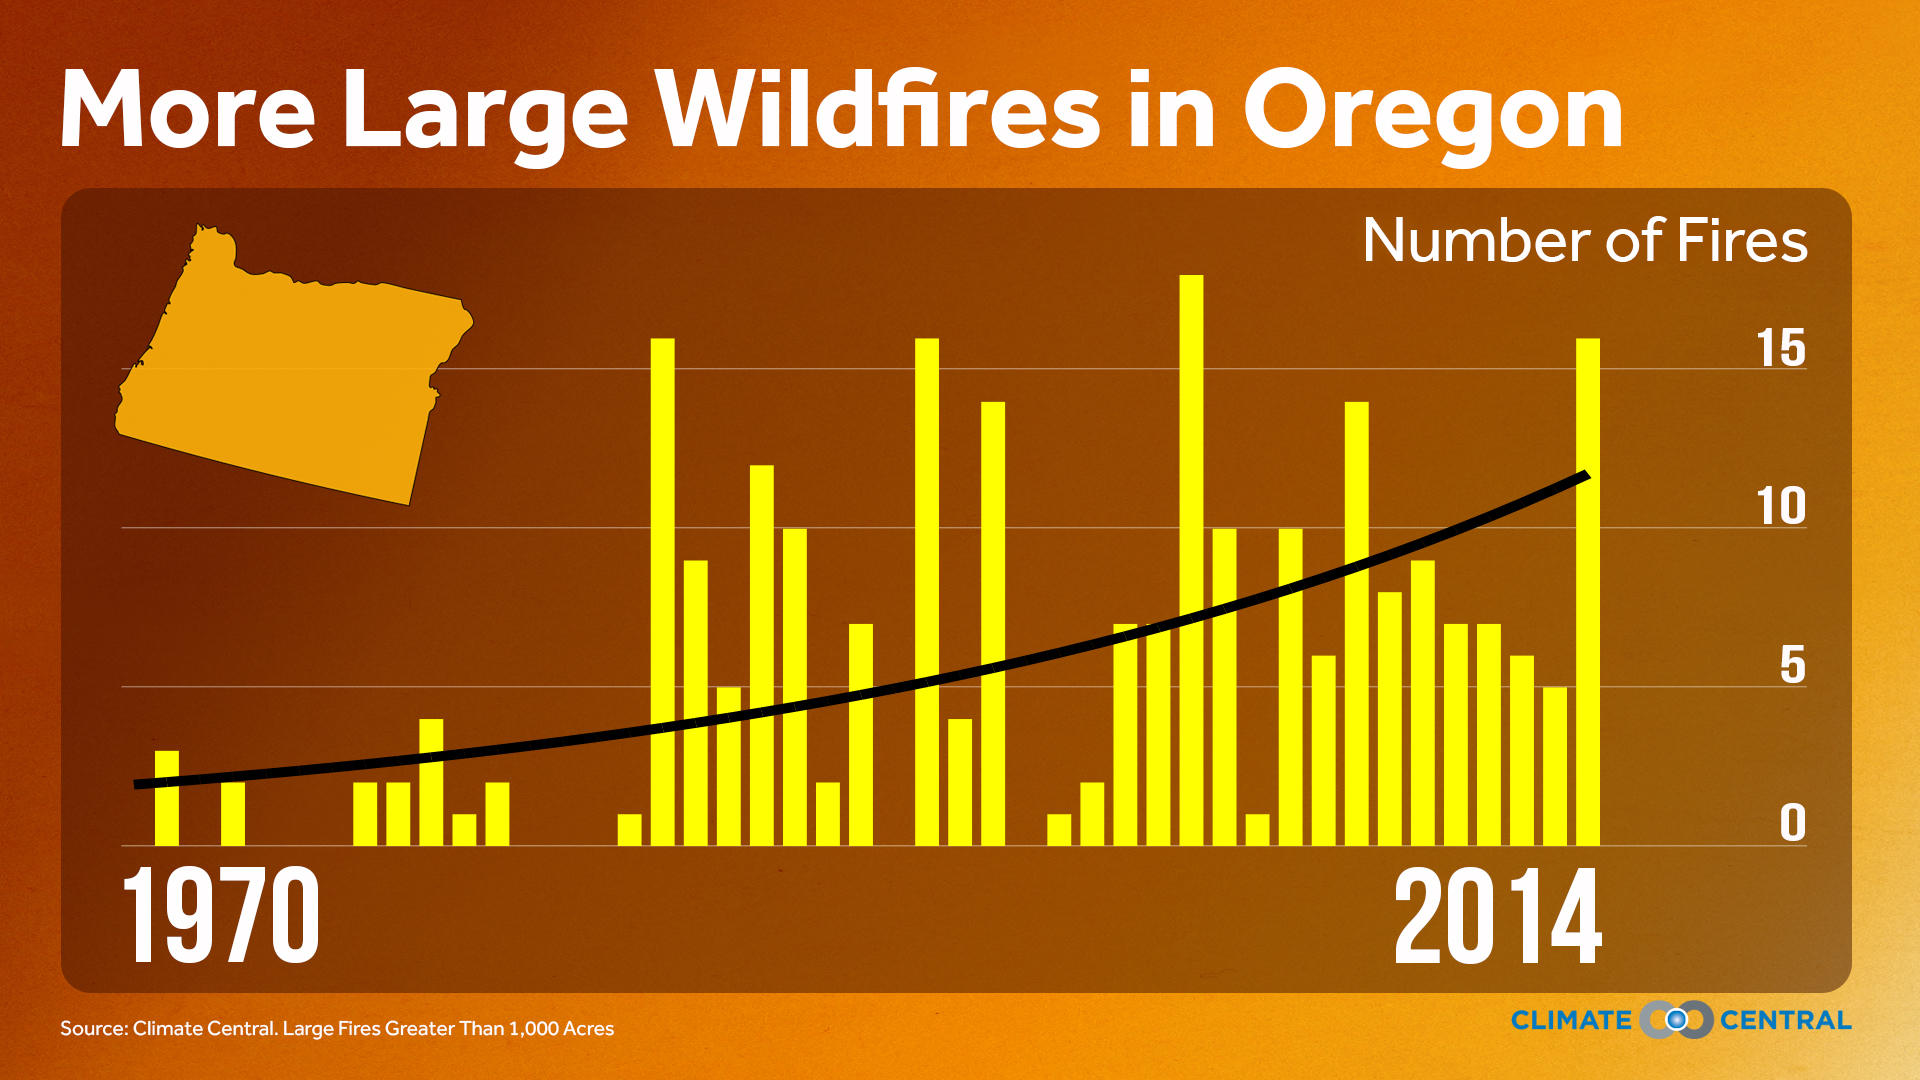 Wildfire trends in Oregon